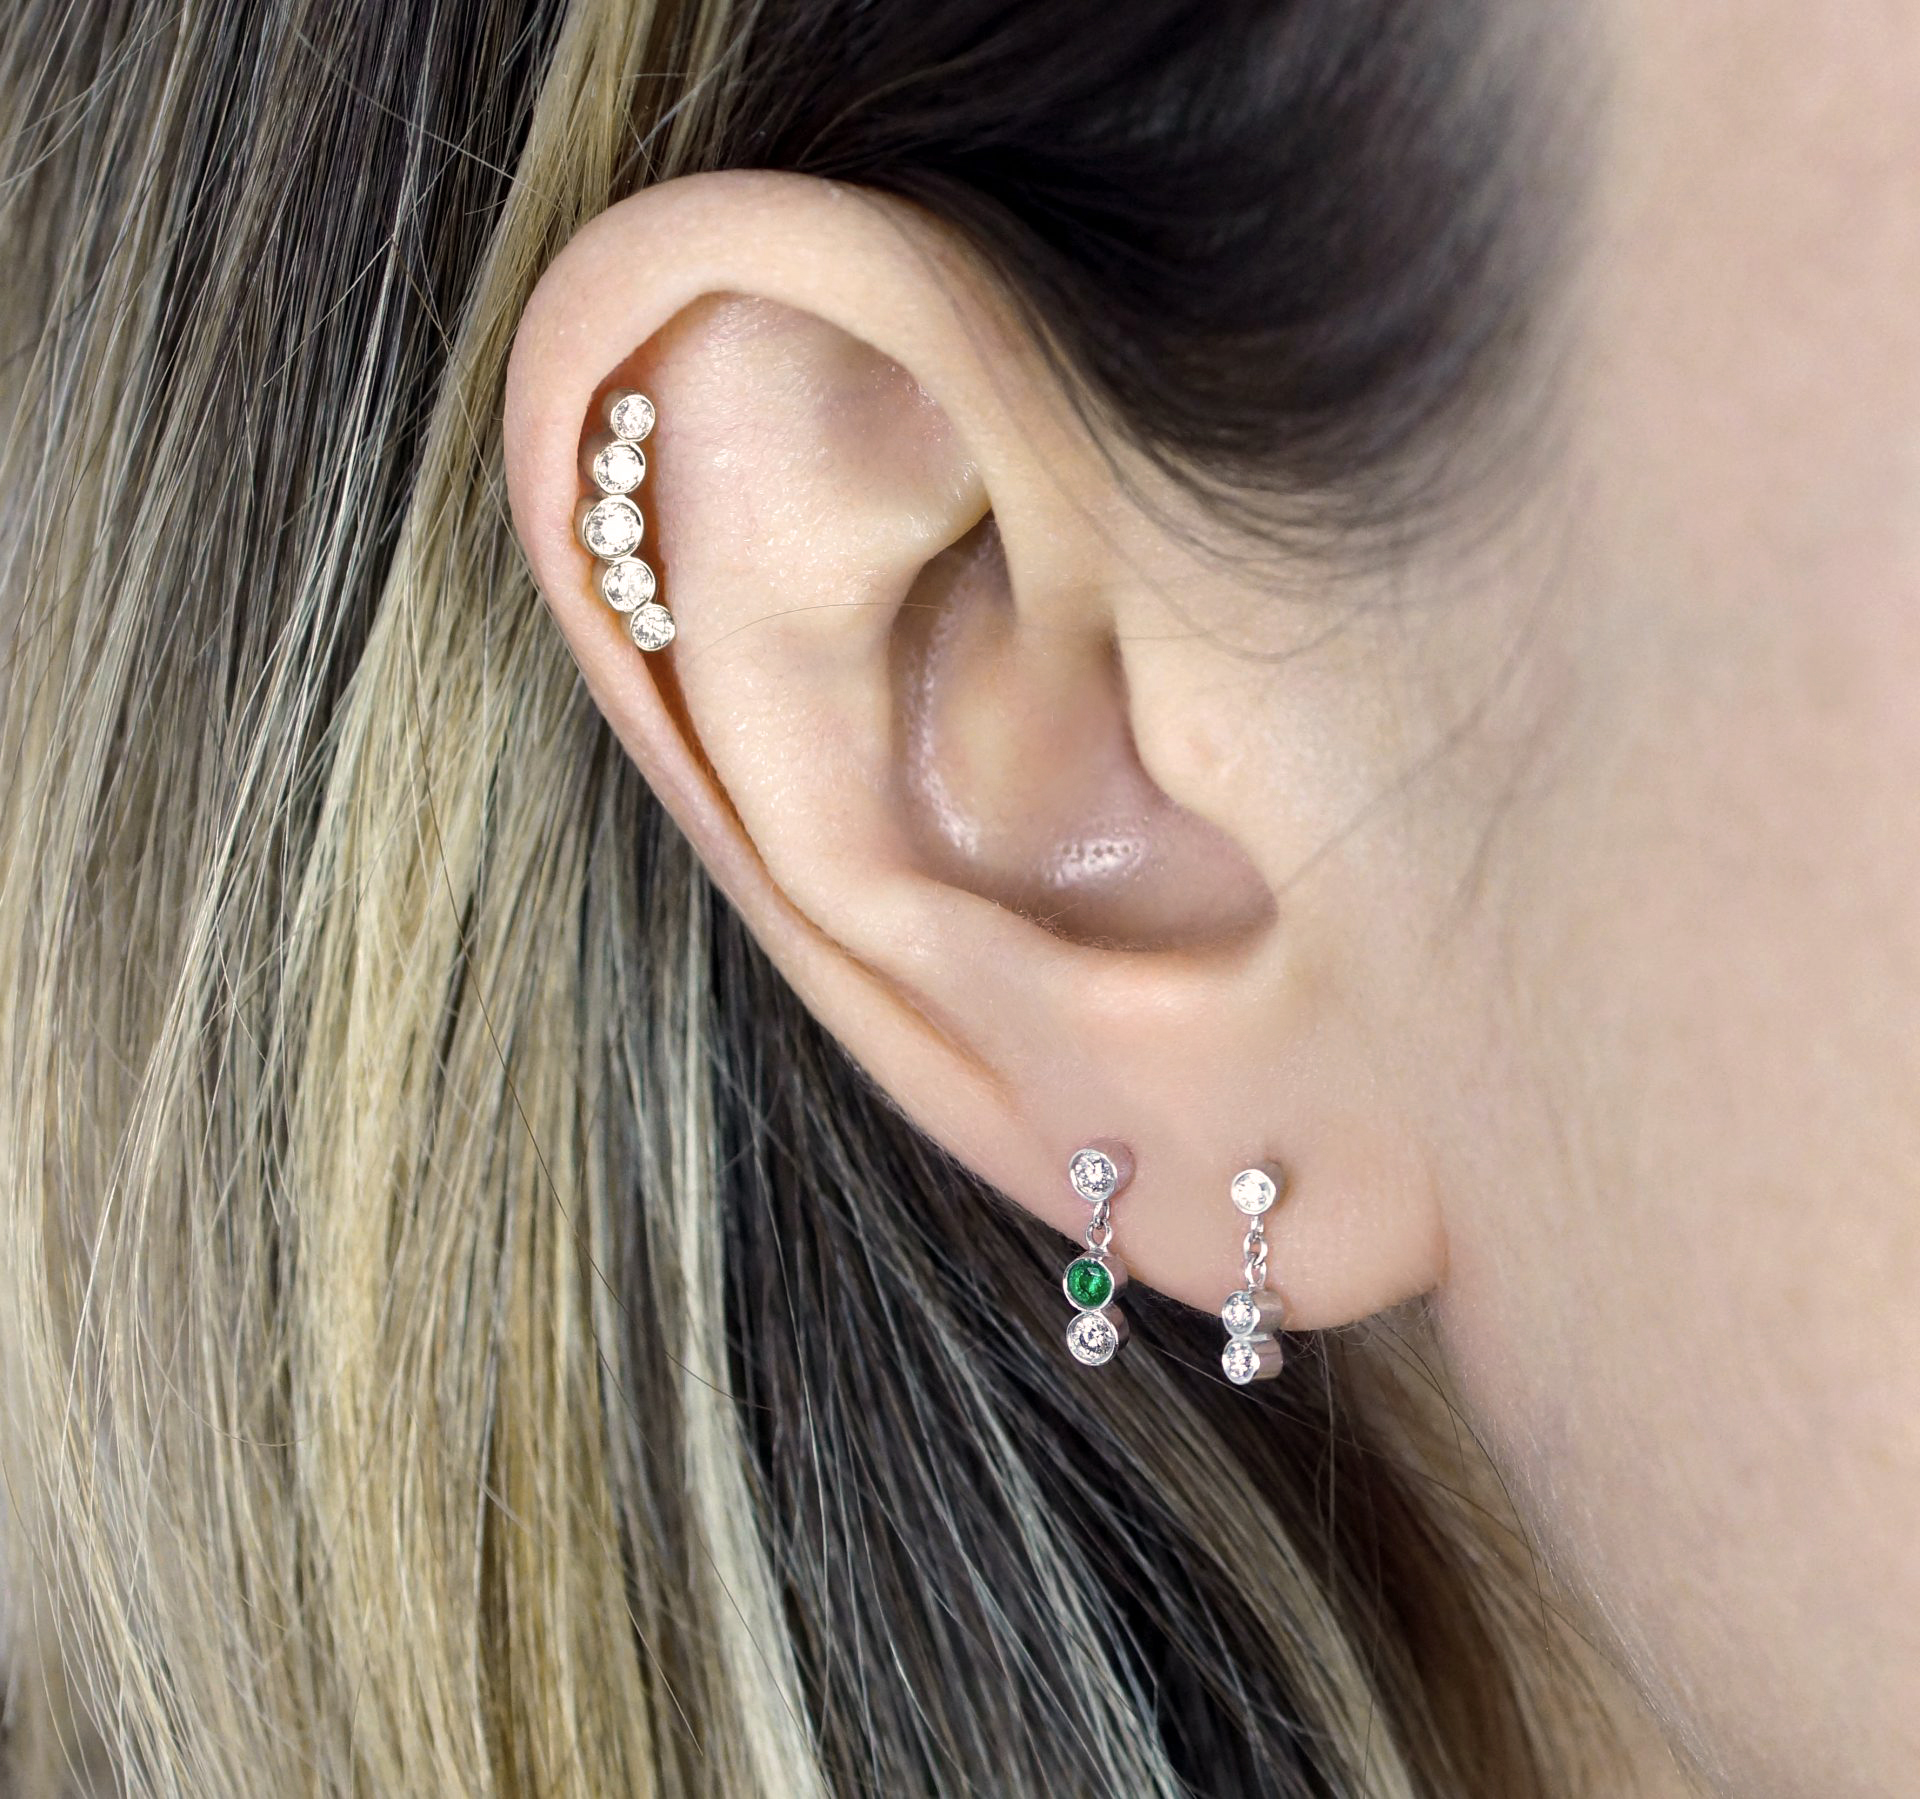 luxury-piercings-slightly-curved-design-makes-this-style-especially-stunning-for-helix-piercings